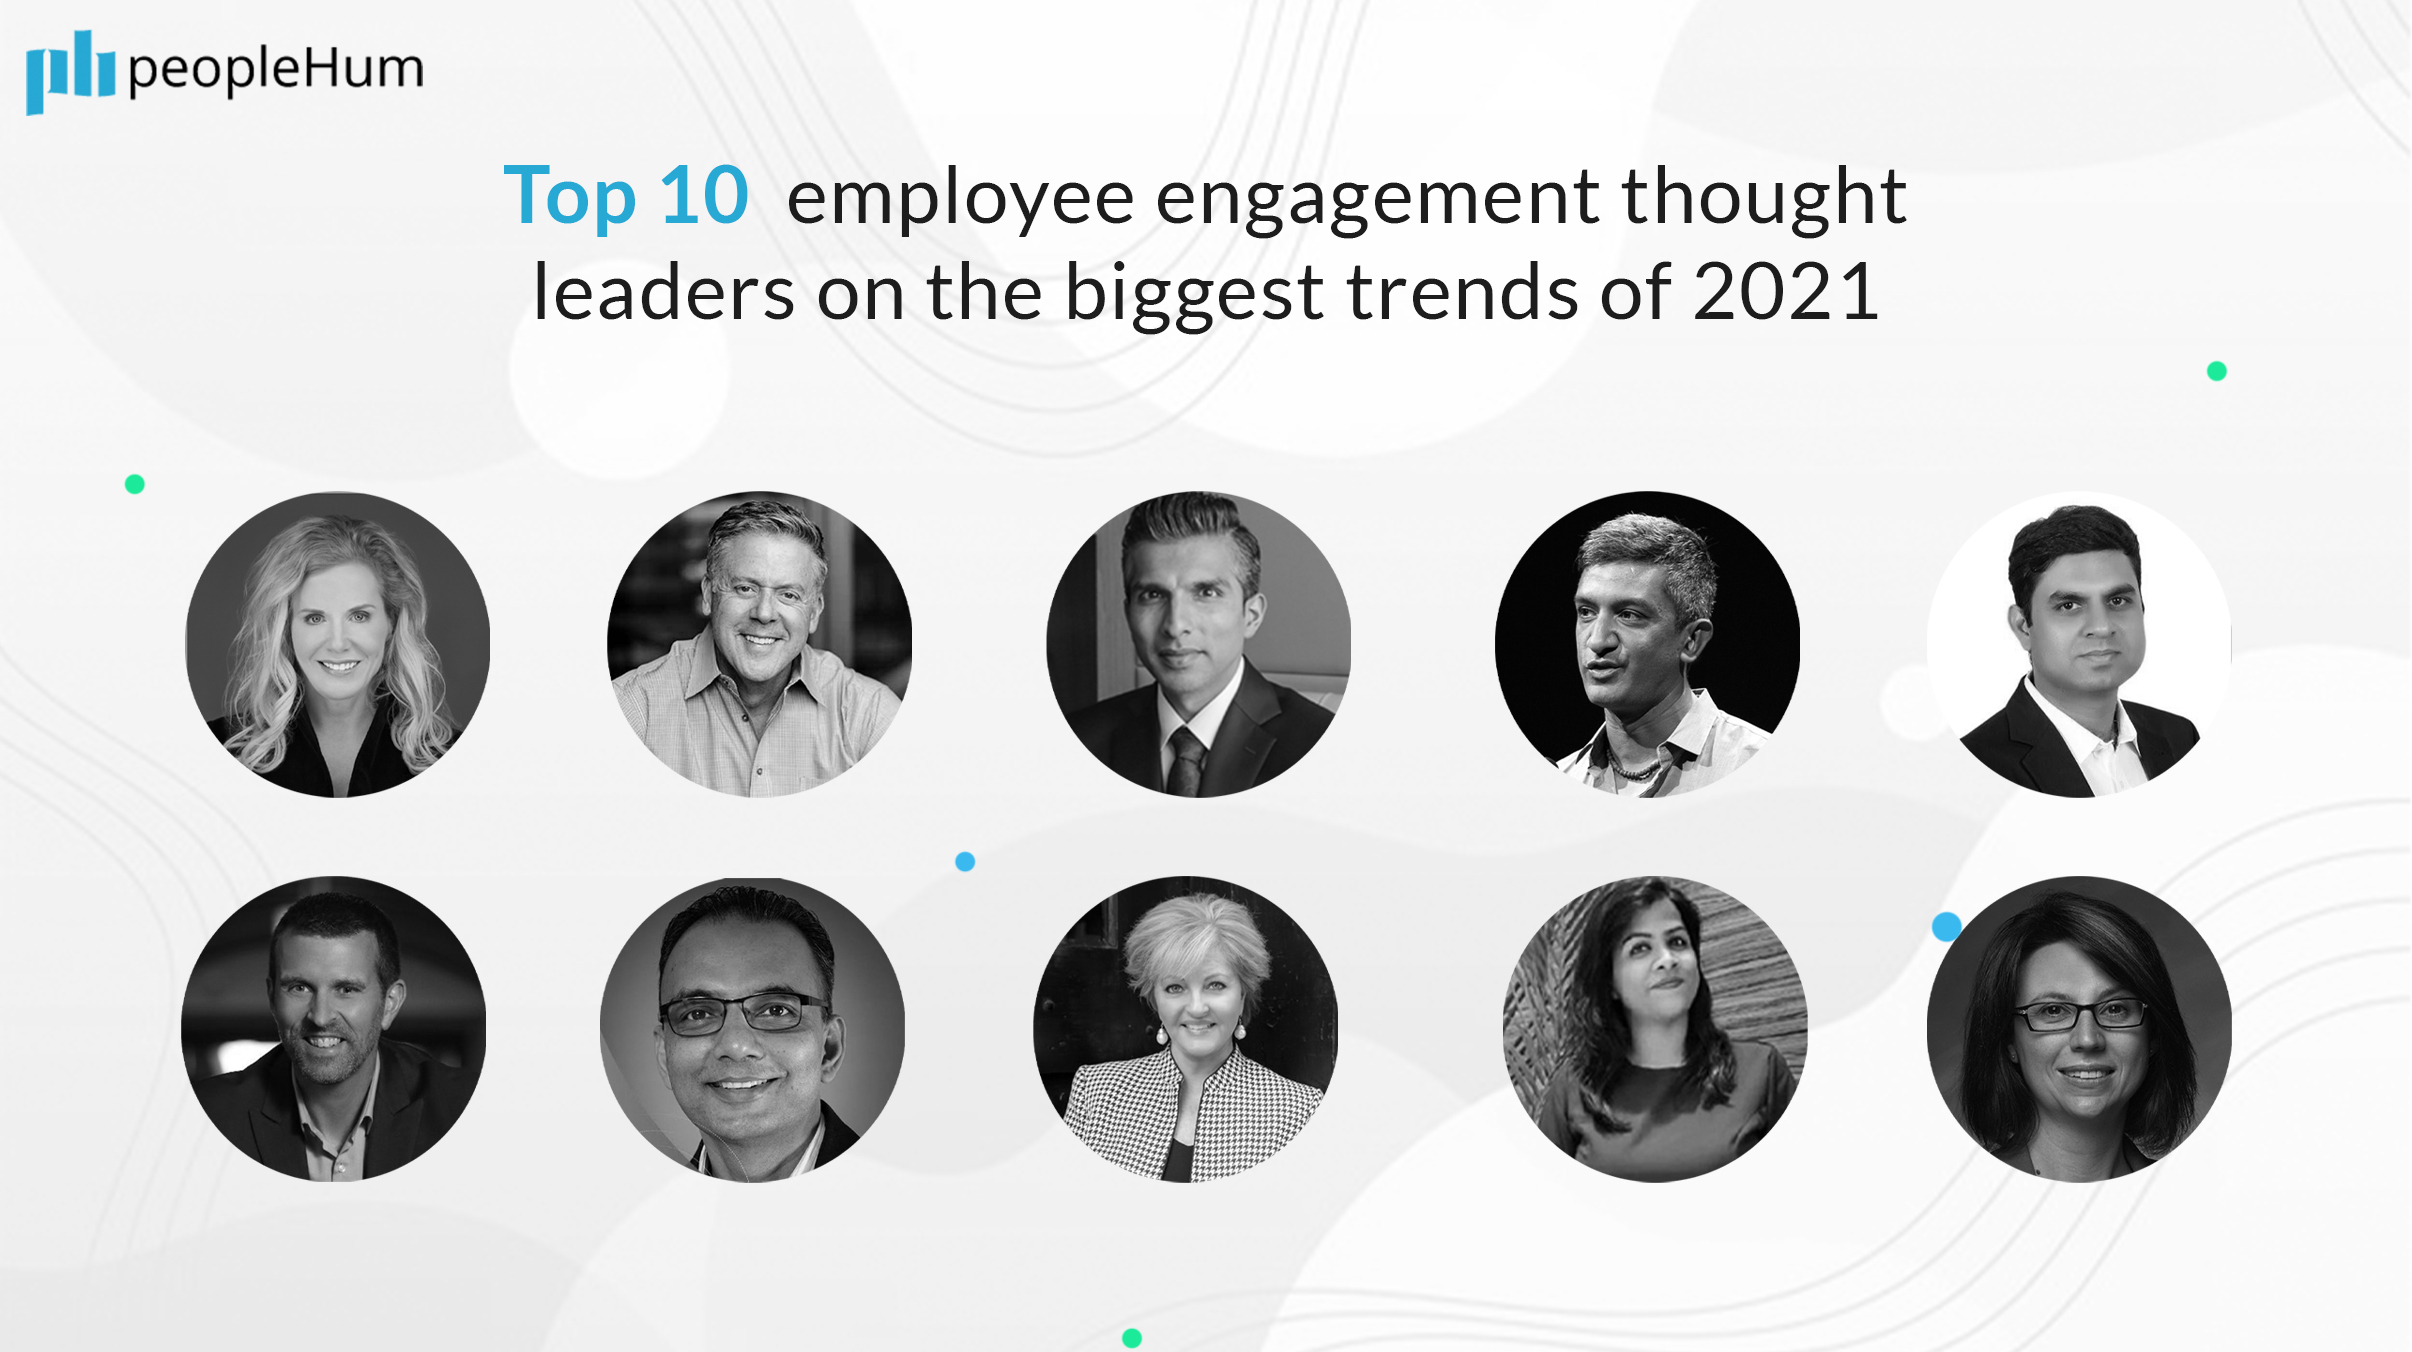 Top 10 employee engagement thought leaders on the biggest trends of 2021